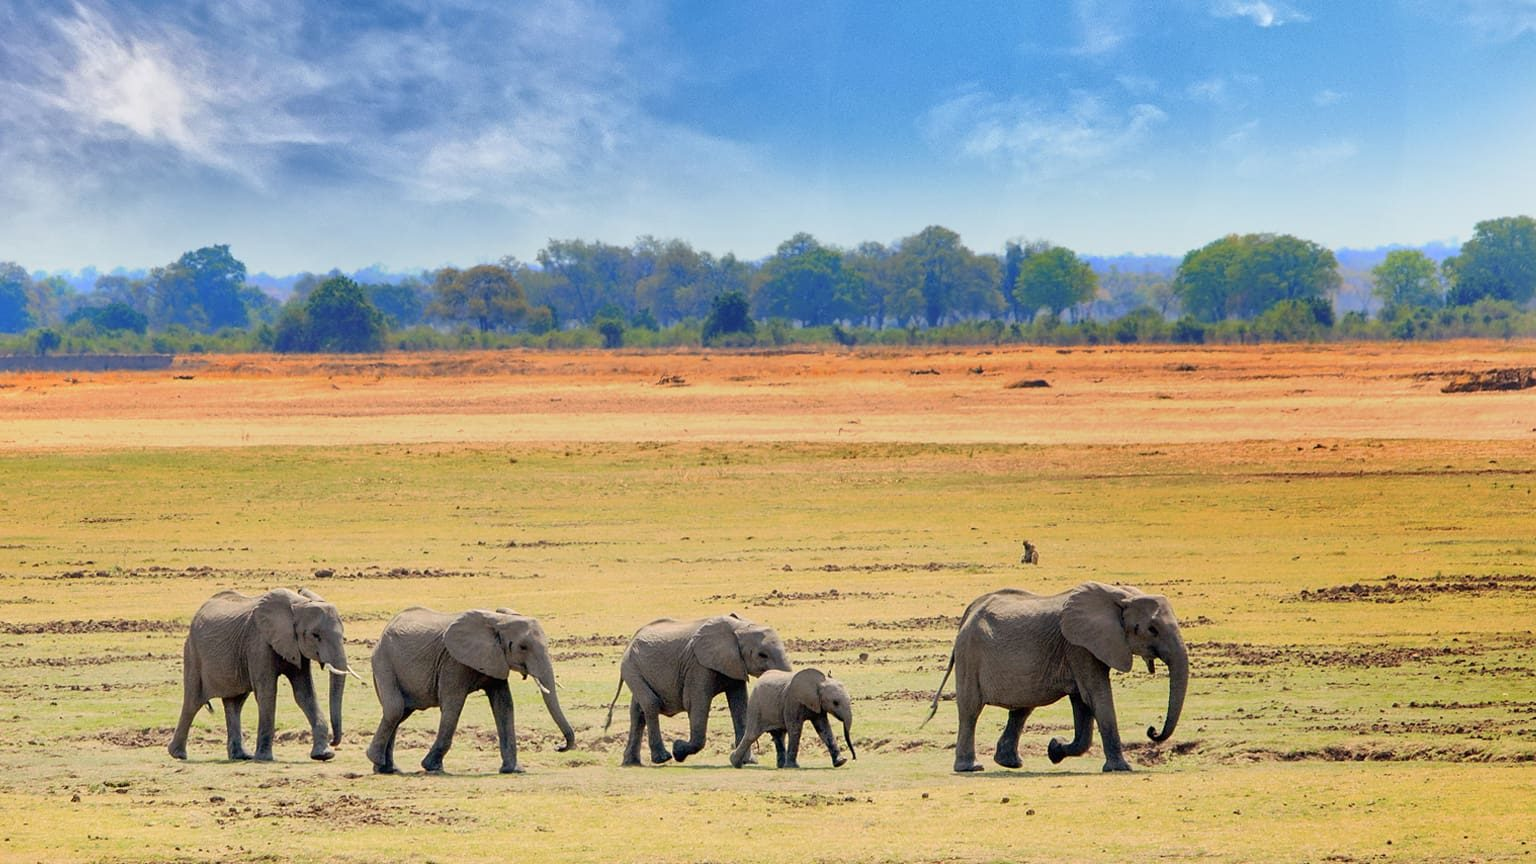 African Elephants walking across the Southwest National Park, South Africa